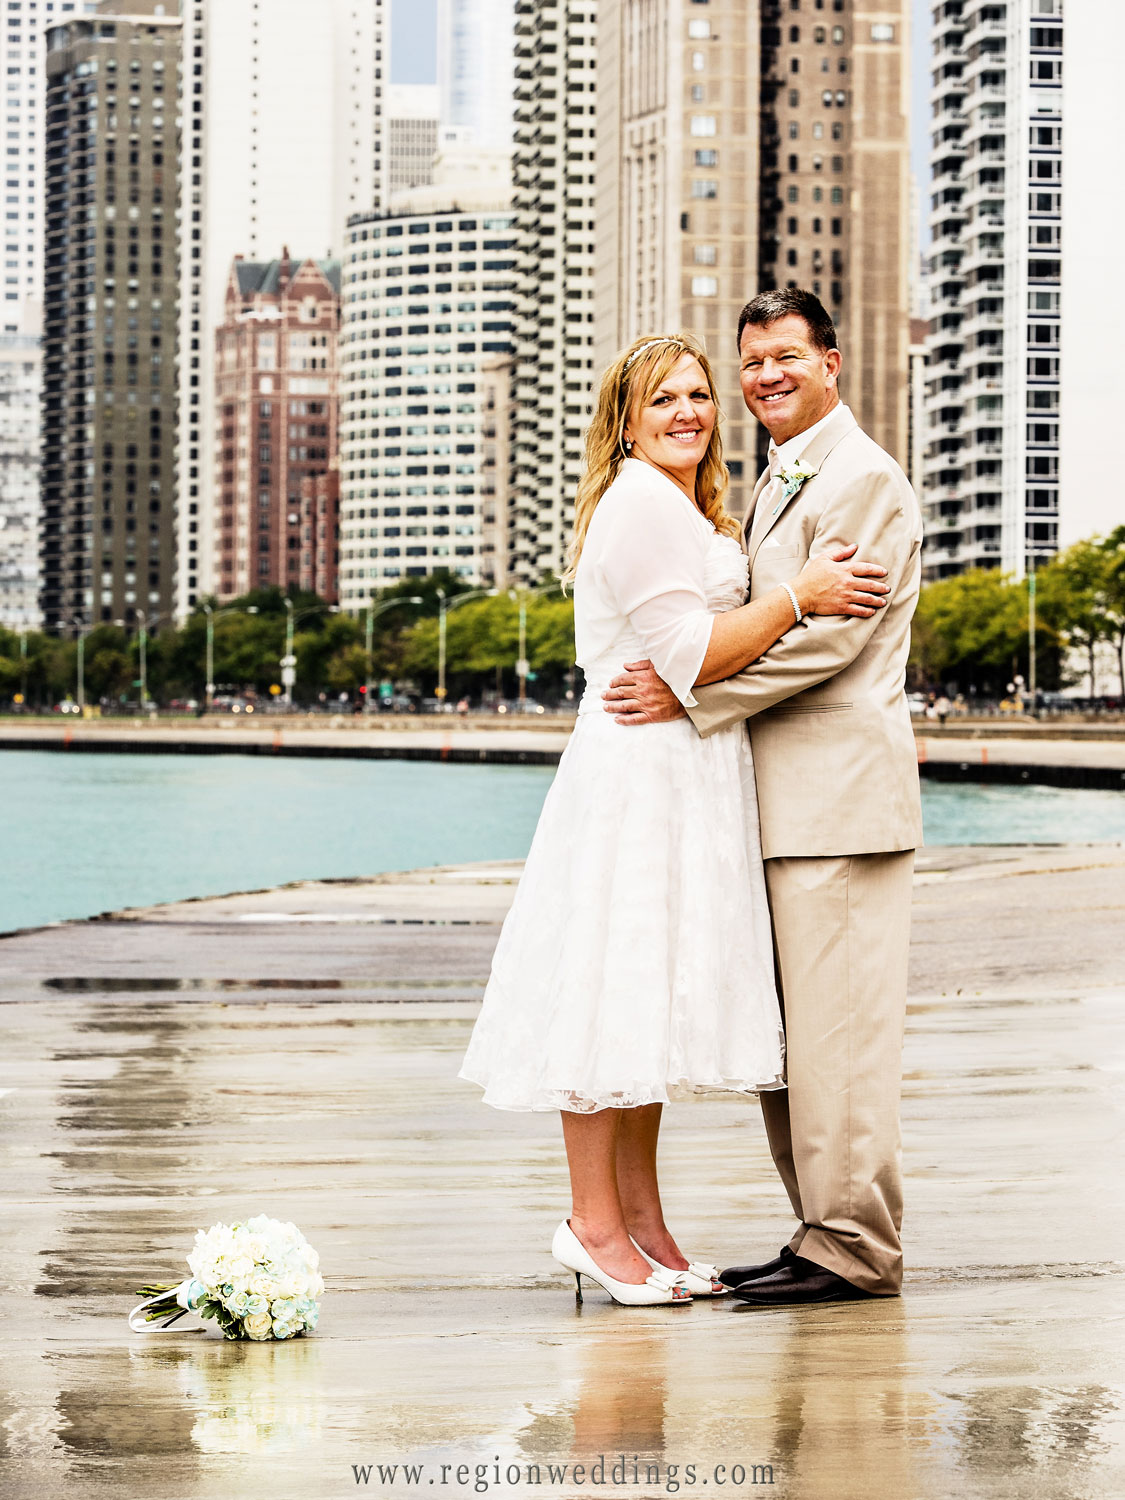 Rain reflects the bride's bouquet on the shore of Lake Michigan in this Chicago wedding photo.